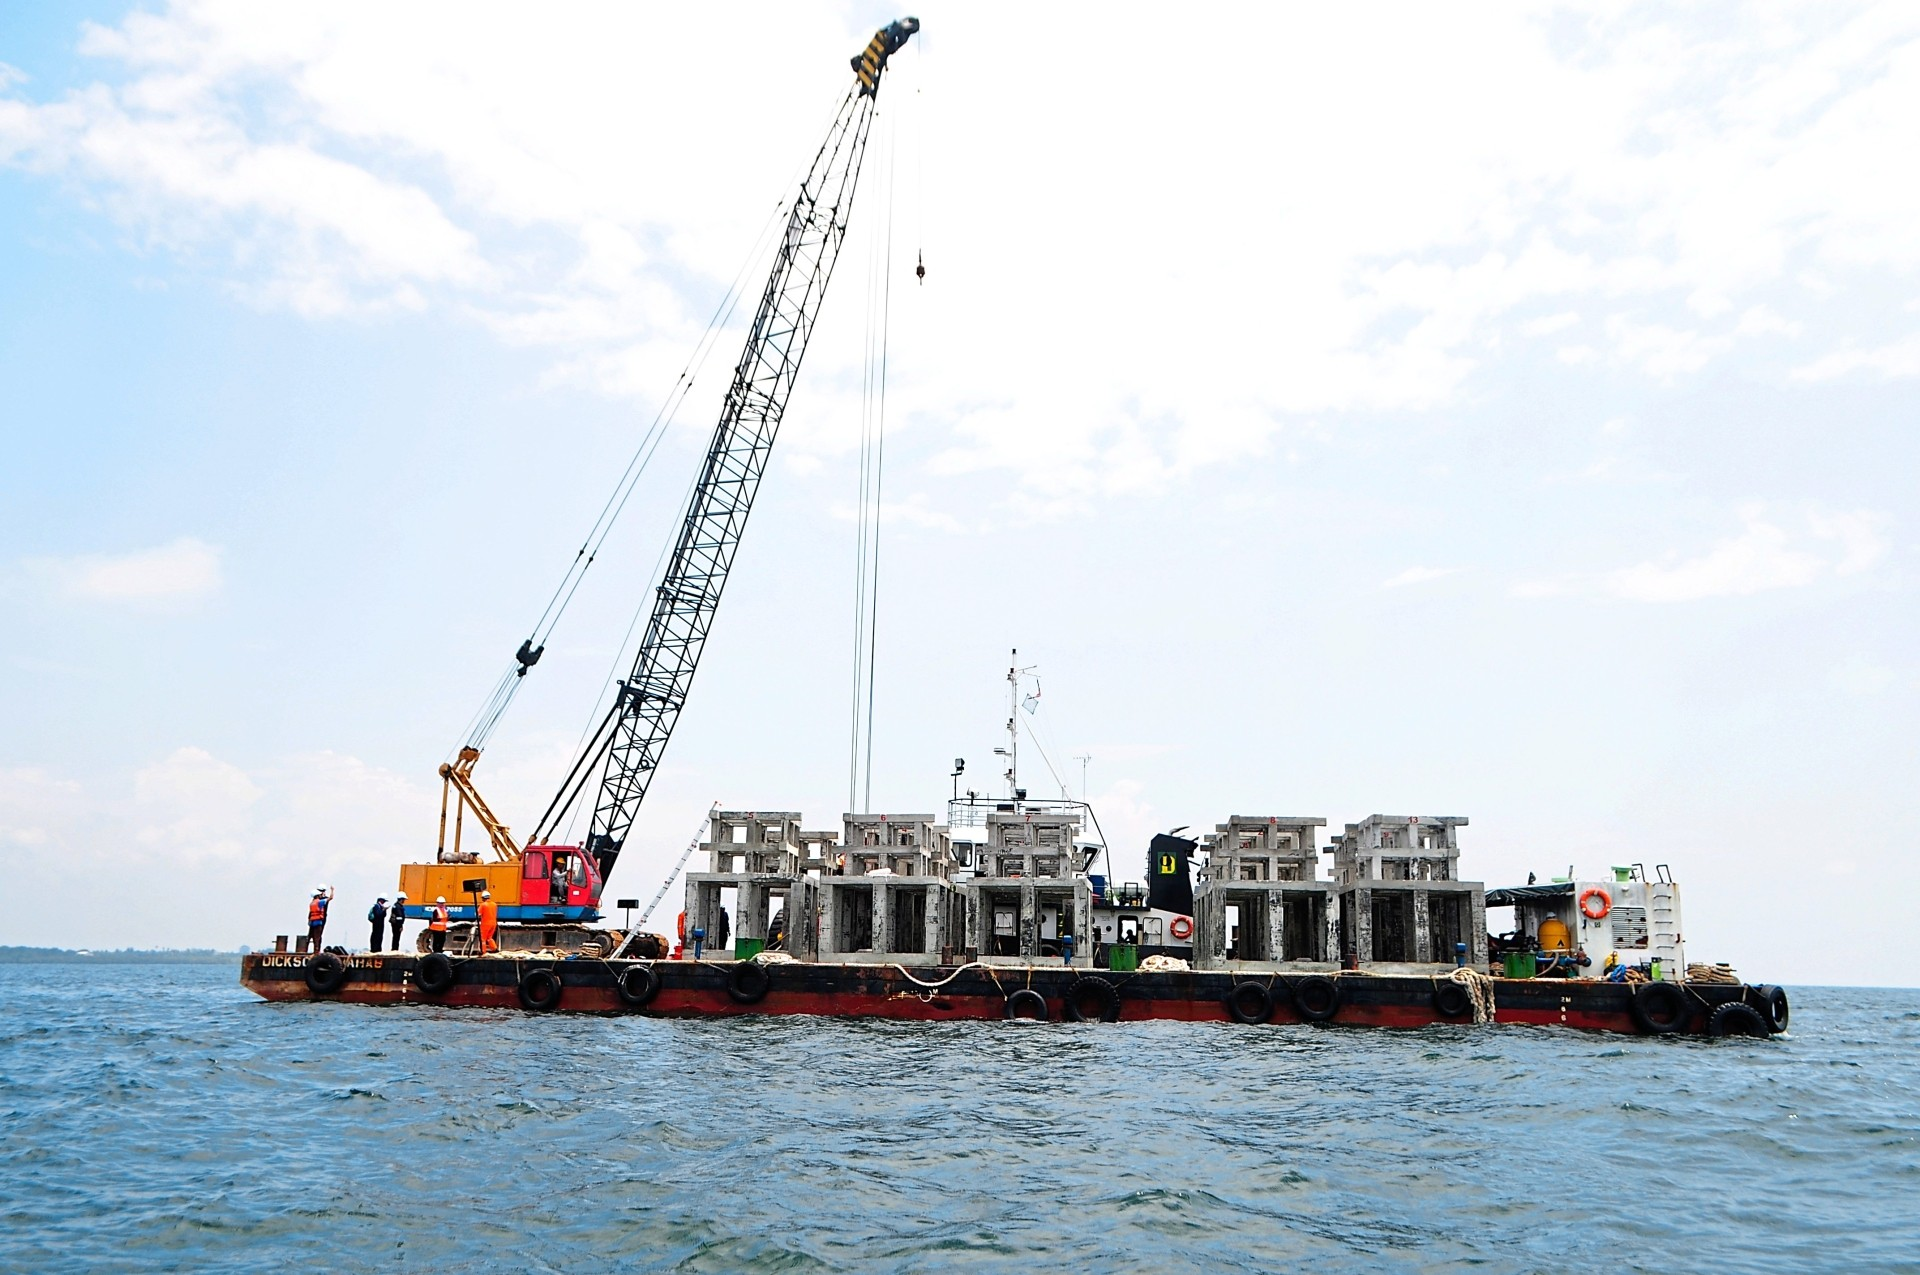 1) The barge transporting 14 concrete artificial reefs that weigh 18 metric tonnes each, to a location two nautical miles out at sea near Batu Laut in Sepang.